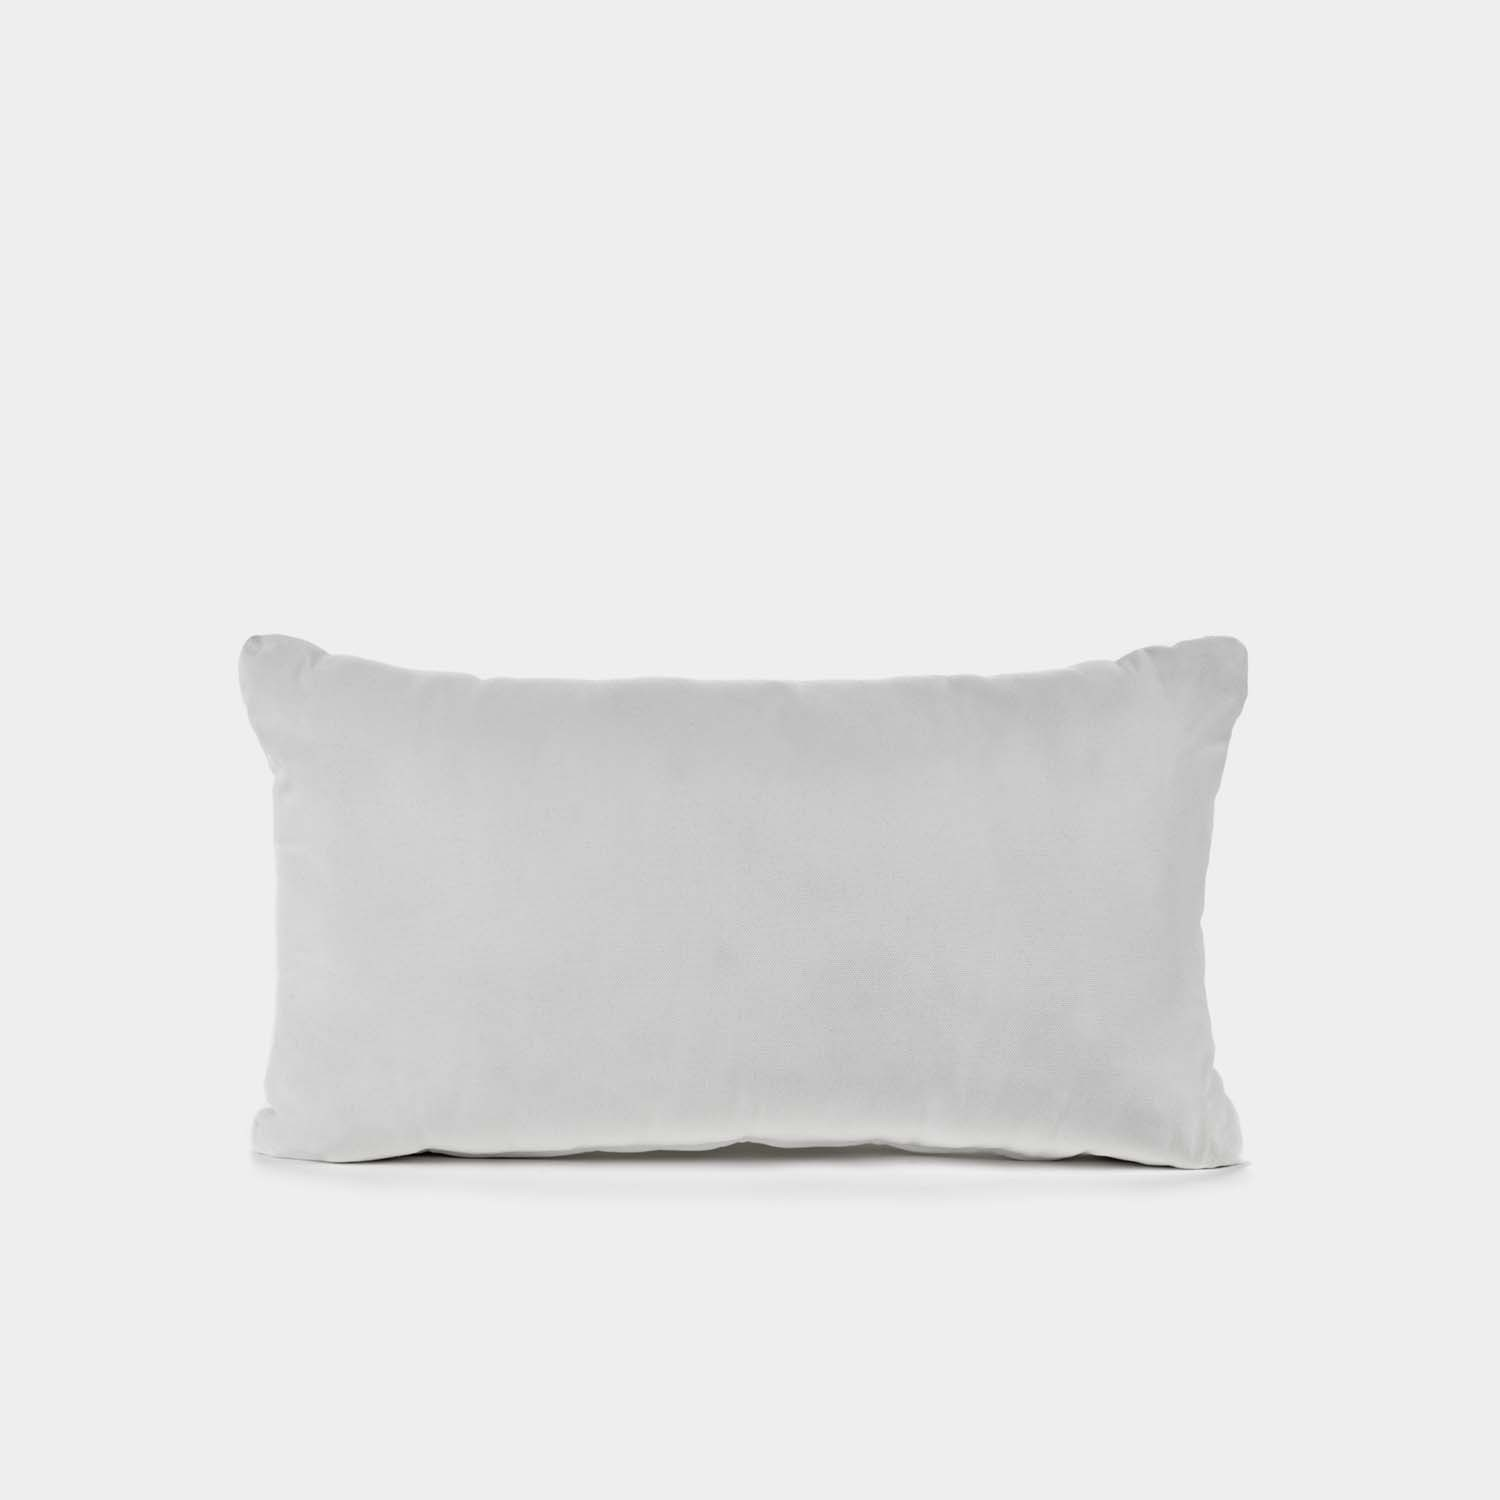 Decorative Cushion, Rectangular, Outdoor, White